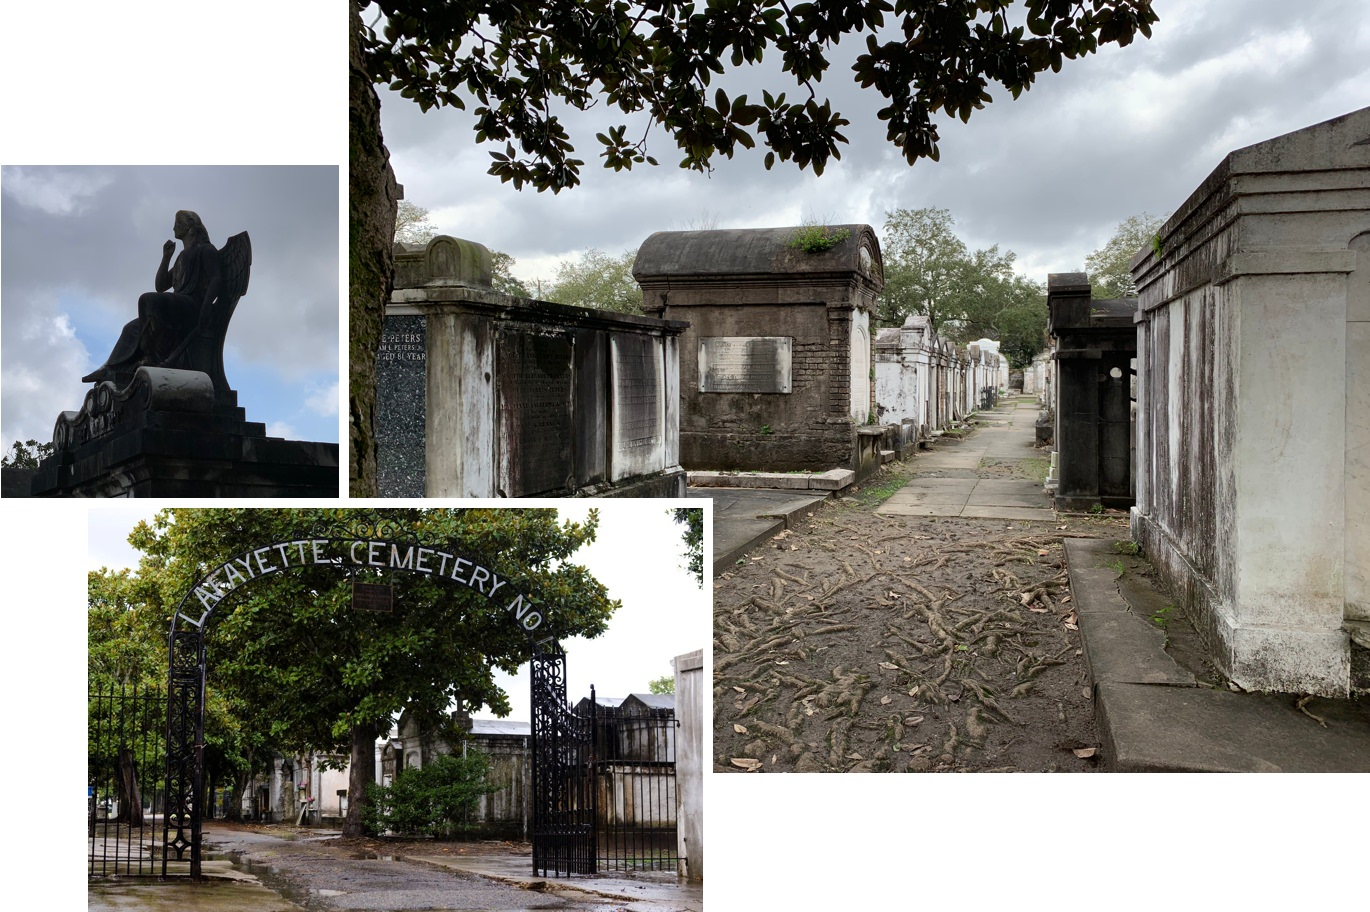 Lafayette Cemetery No 1. in the Garden District